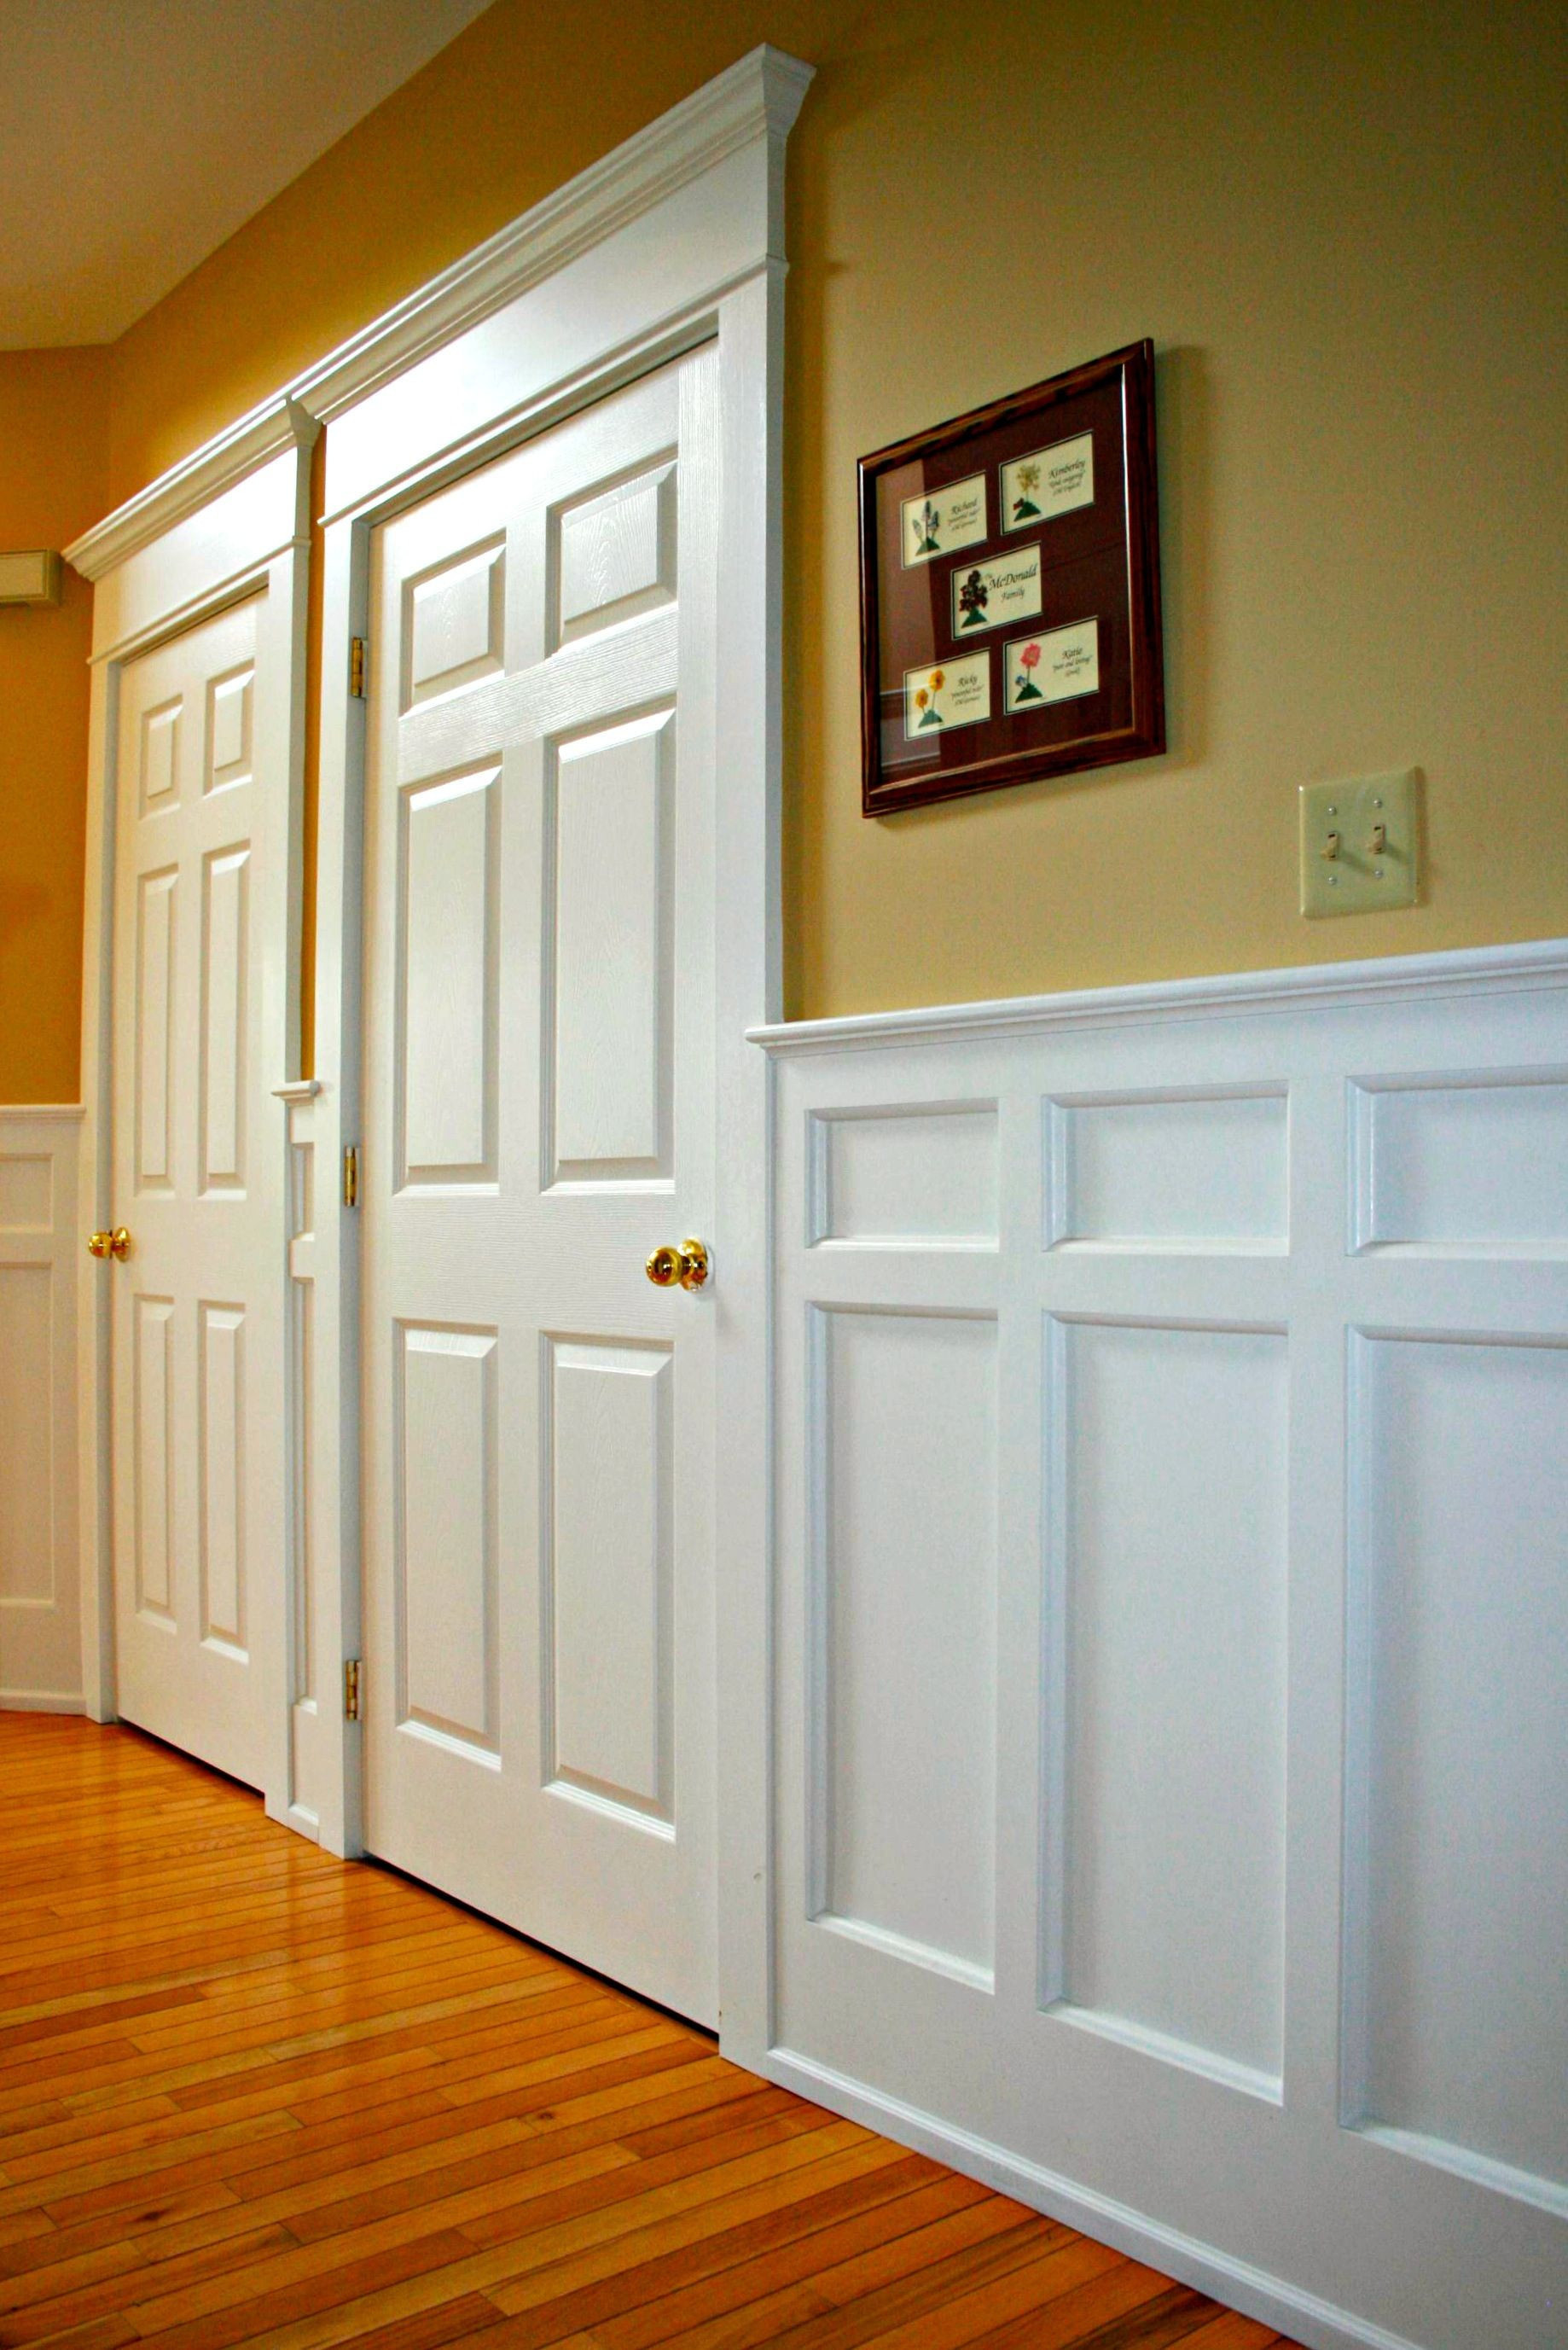 armstrong hardwood flooring company lancaster pa of flooring contractor 50 beautiful epoxy flooring over tiles pics 50 s pertaining to flooring contractor solid wood flooring installation how to install prefinished solid